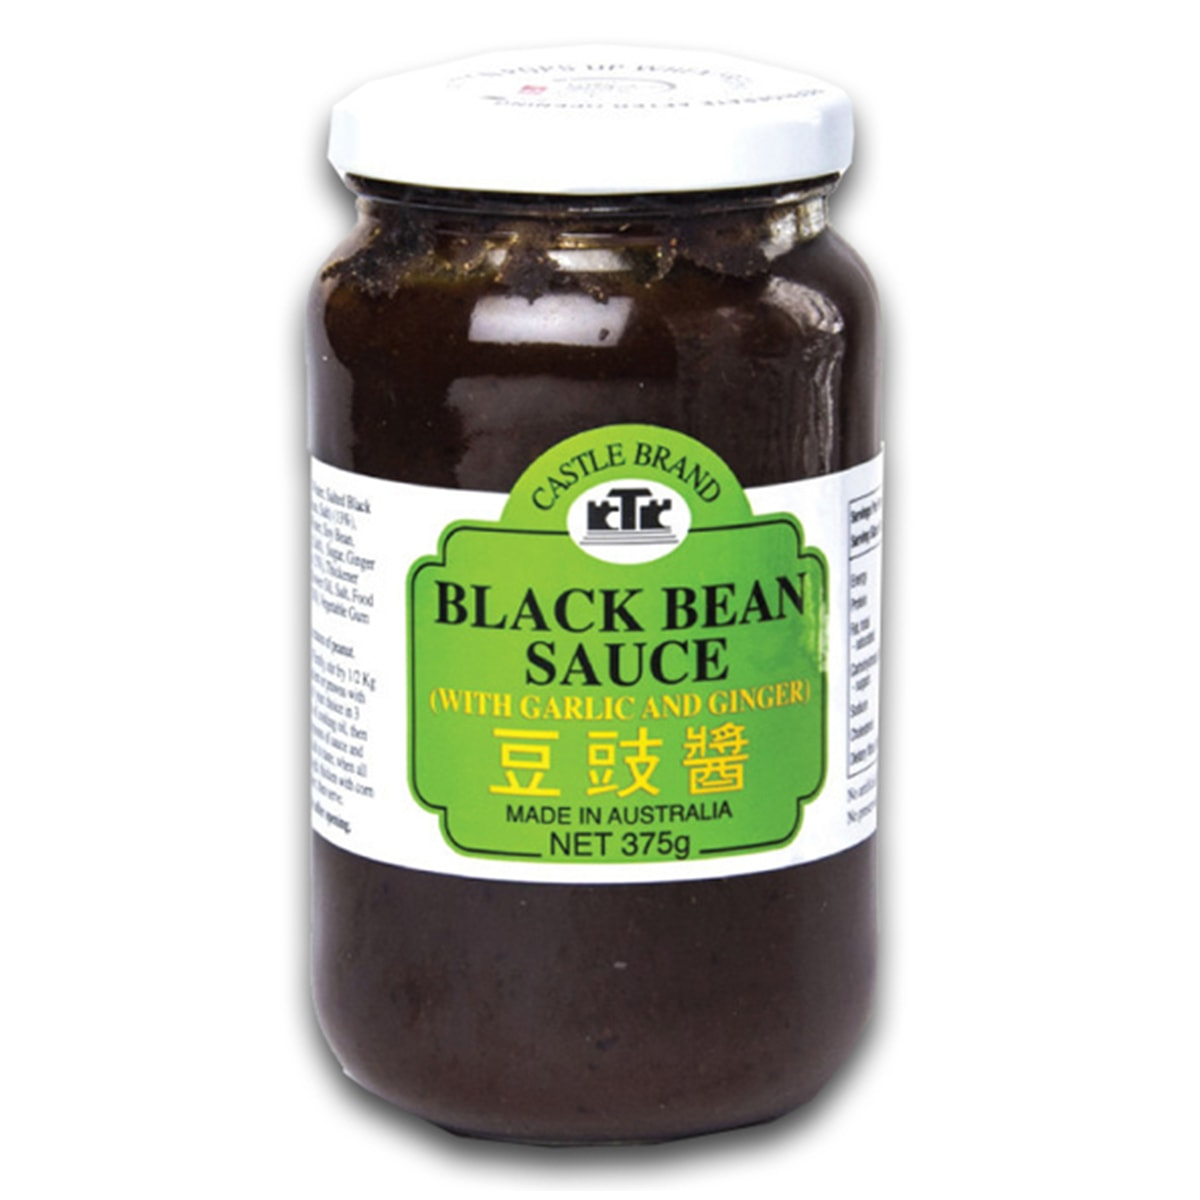 Buy Castle Brand Black Bean Sauce with Garlic and Ginger - 375 gm